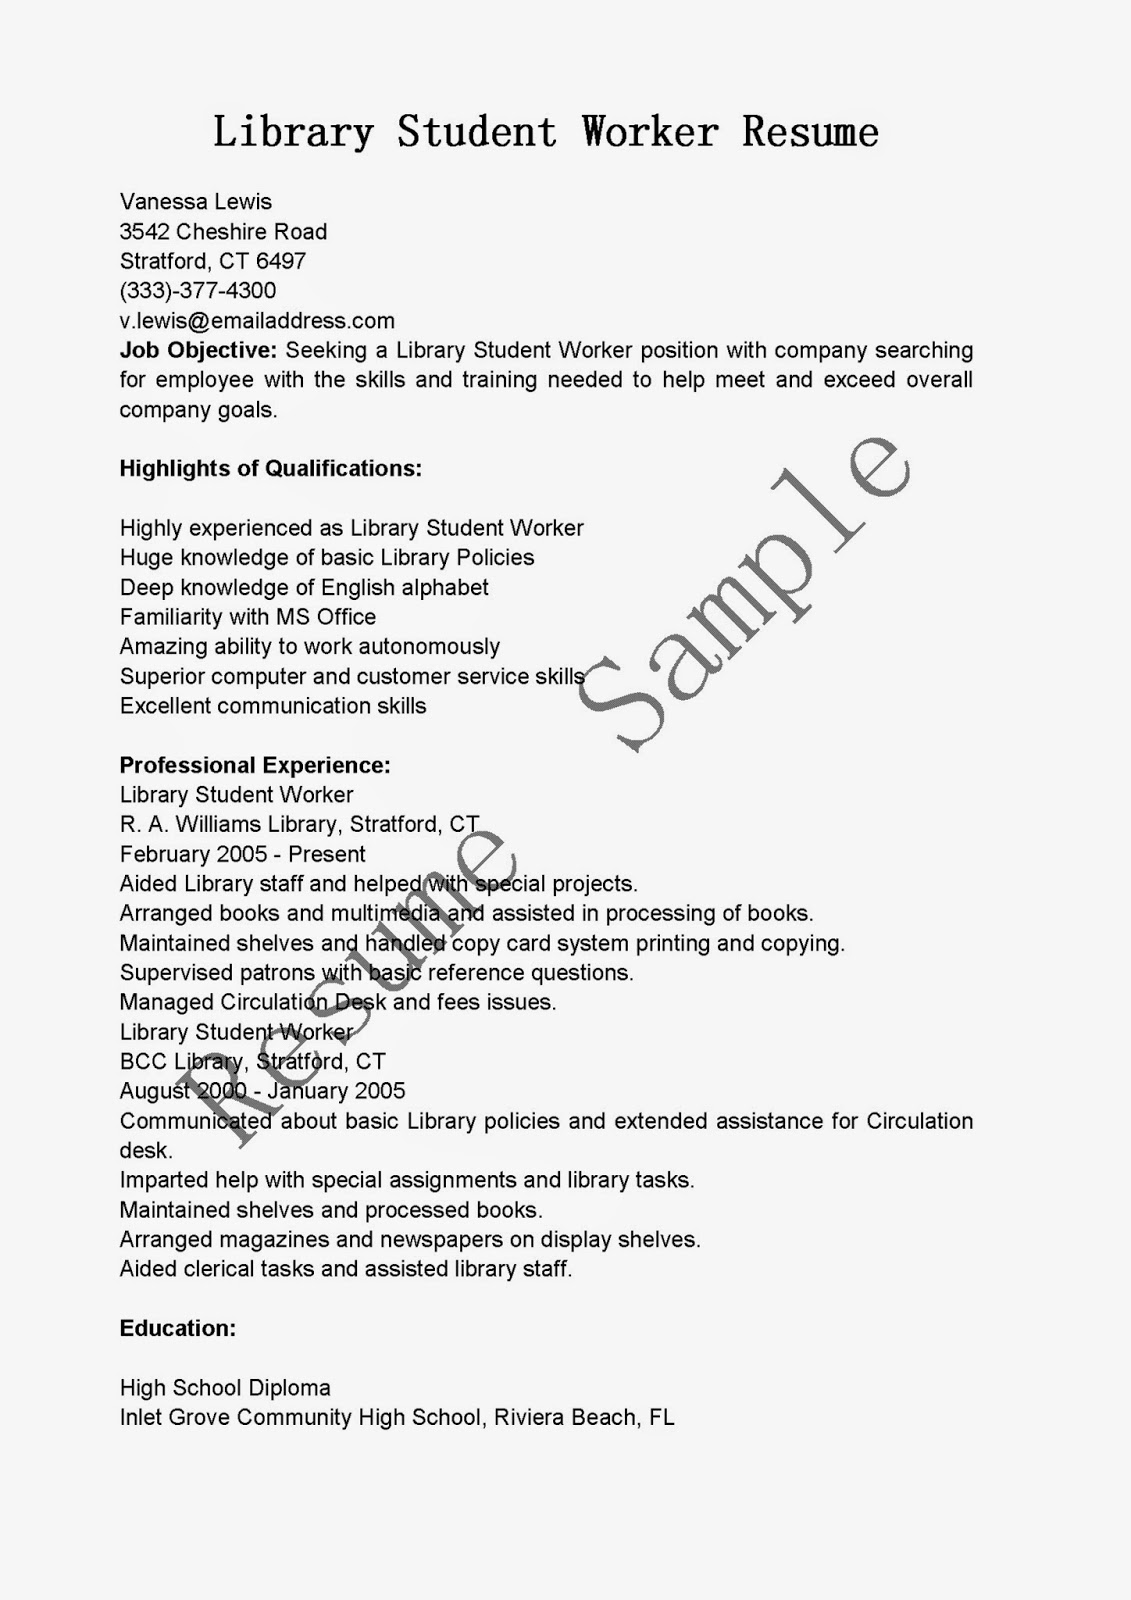 Rhetoric essay writing - KunstenNoord trainee pilot resume ...